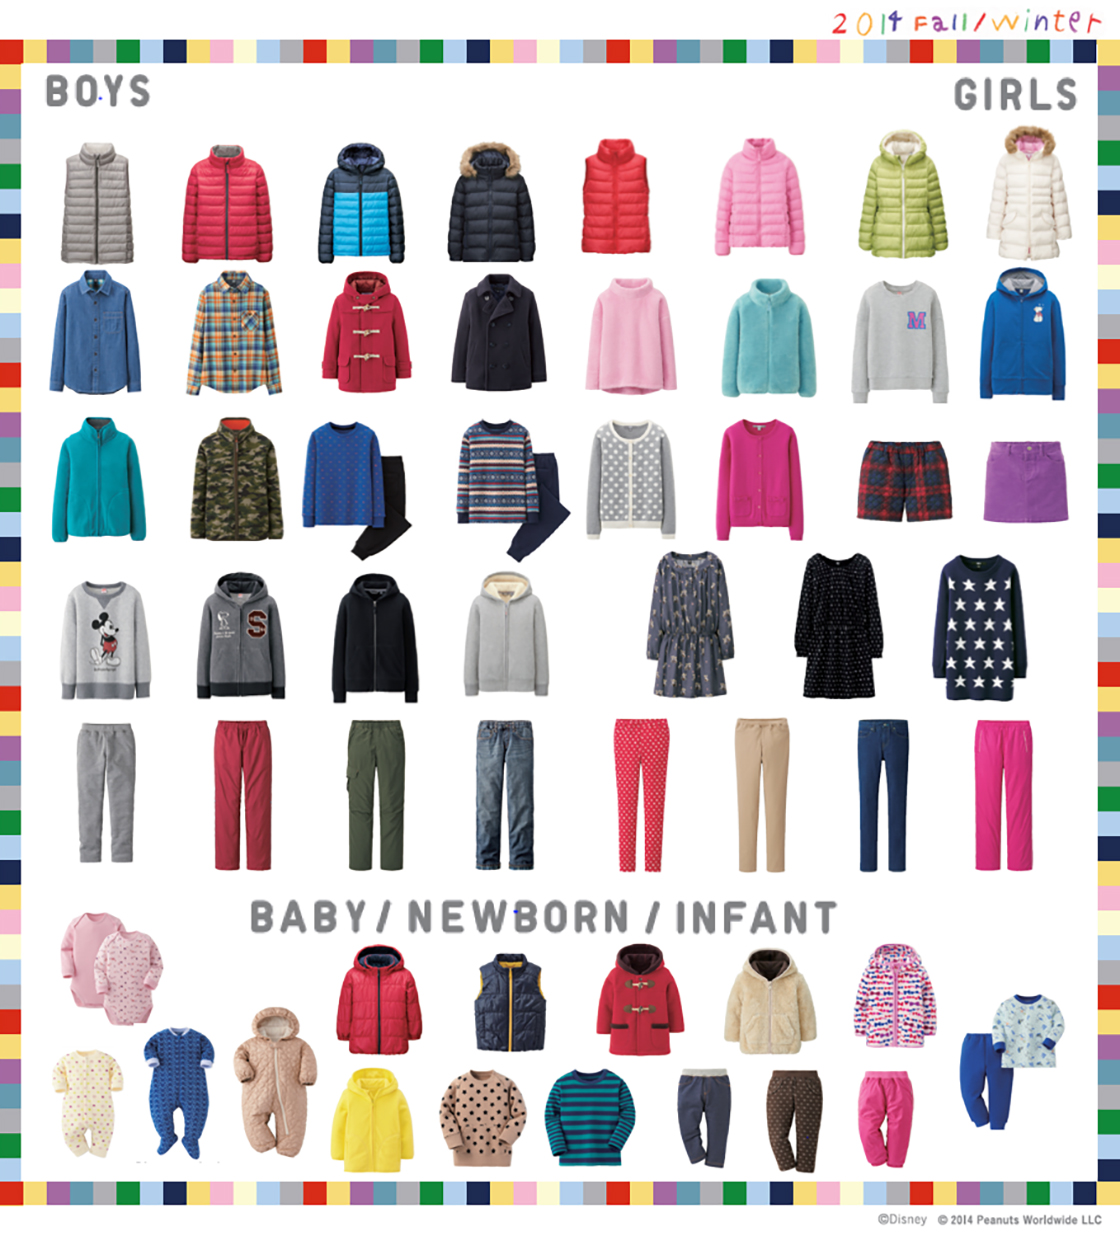 997ade763 UNIQLO Expands its Kids and Babies Collection - Greater variety of ...